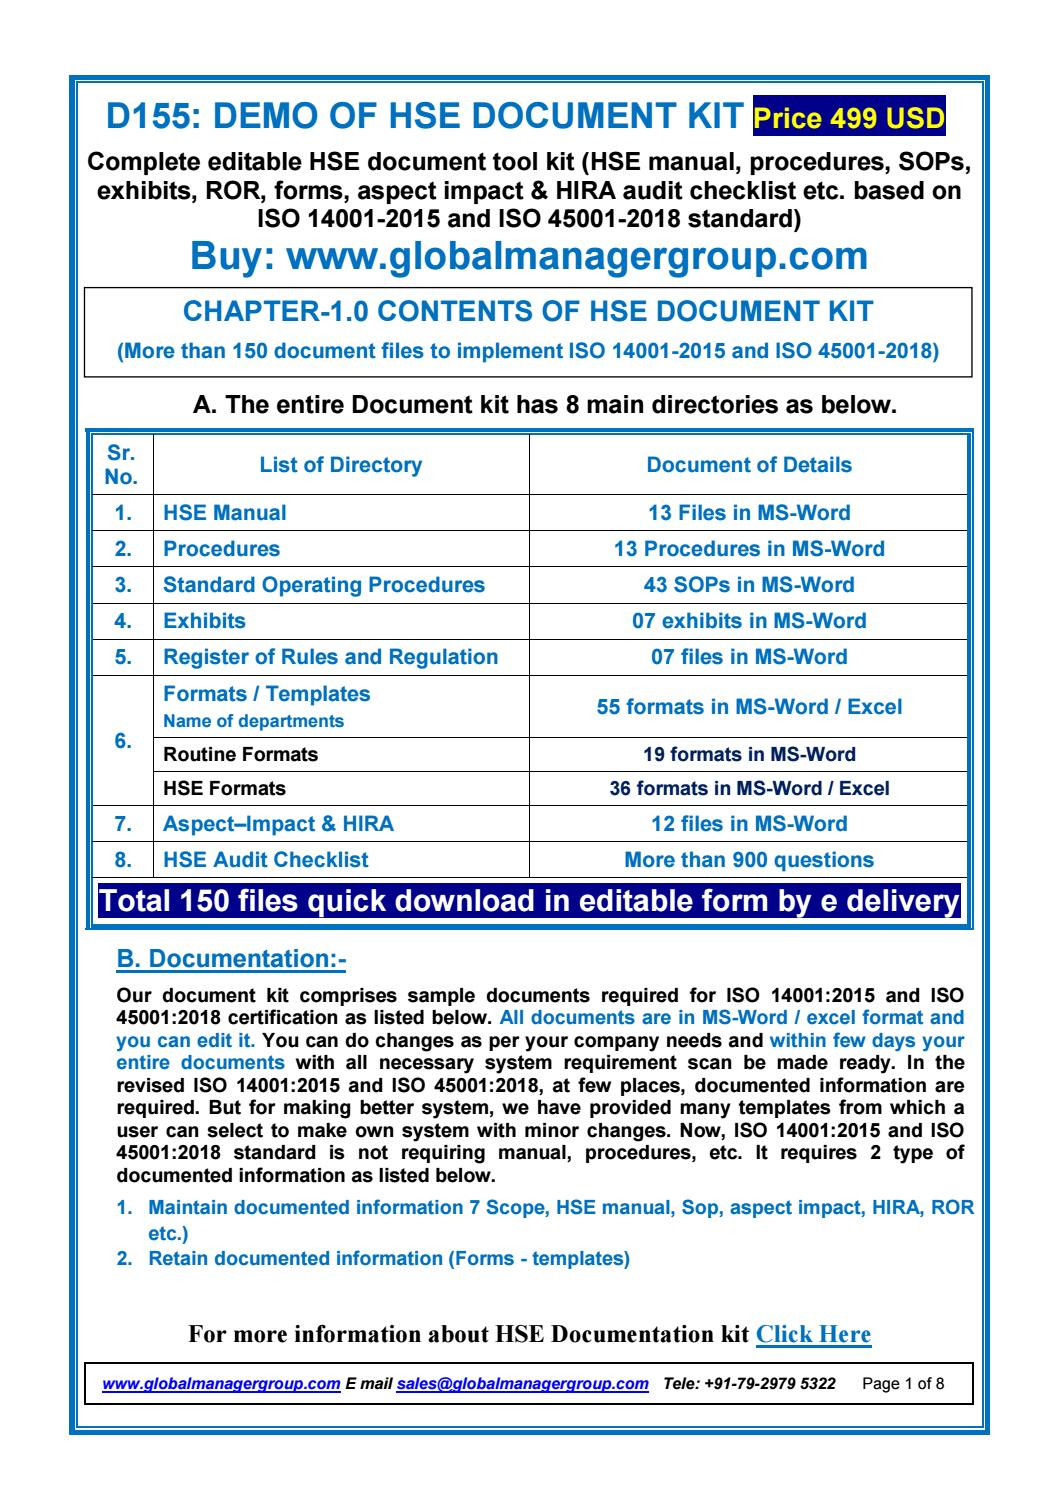 List of required hse documents for iso 14001 iso 450012018 list of required hse documents for iso 14001 iso 450012018 certification by global manager group issuu maxwellsz